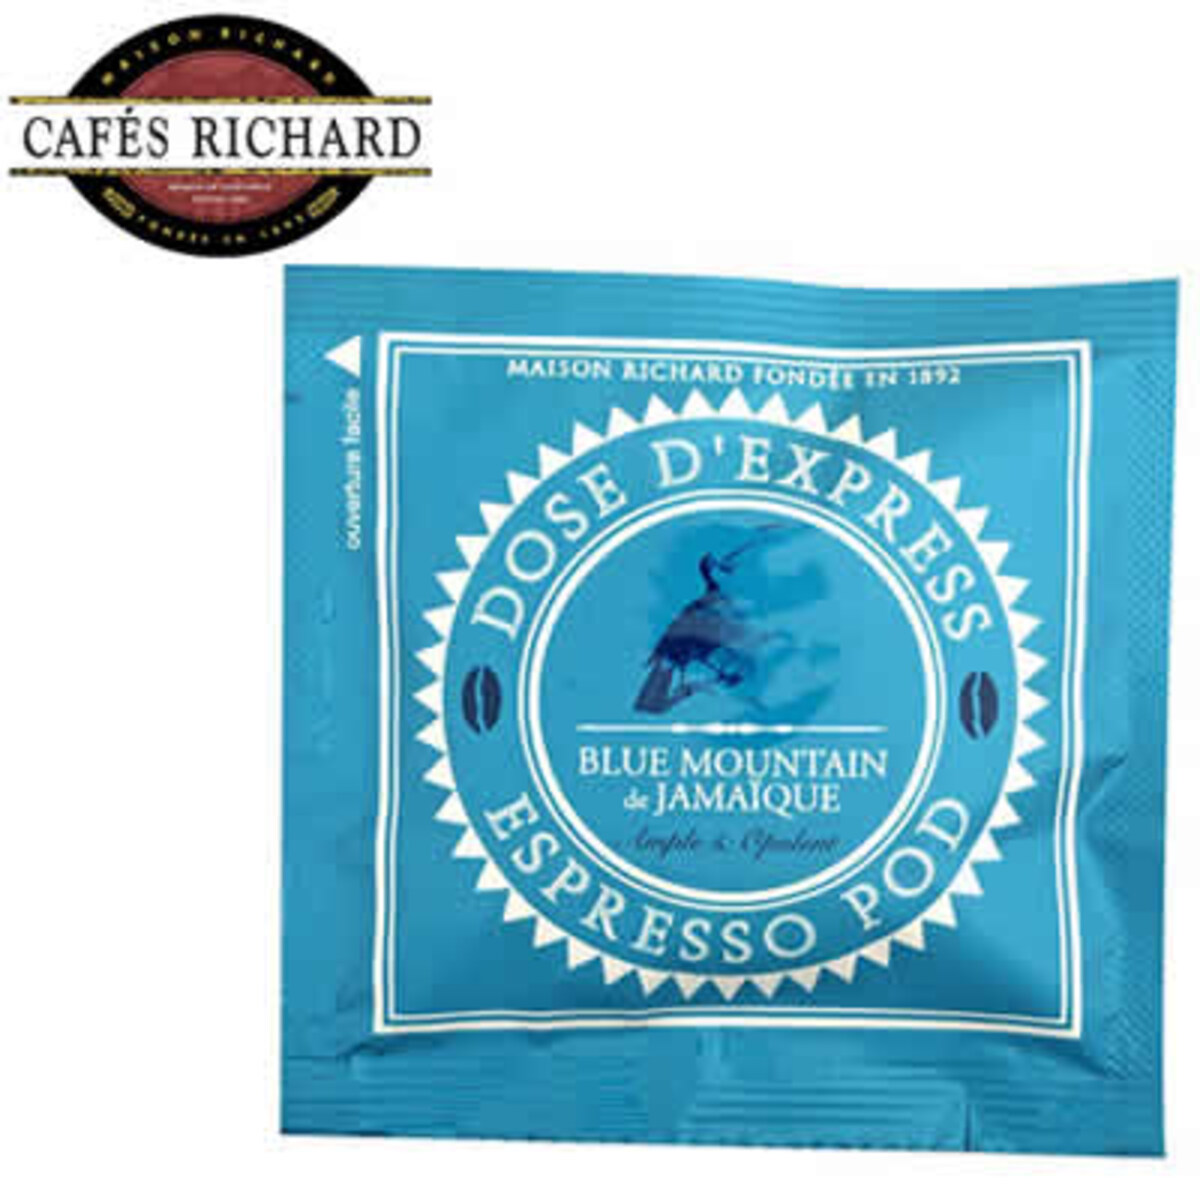 Cafés Richard Blue Mountain de JamaÏ​que -  1 бр доза в опаковка